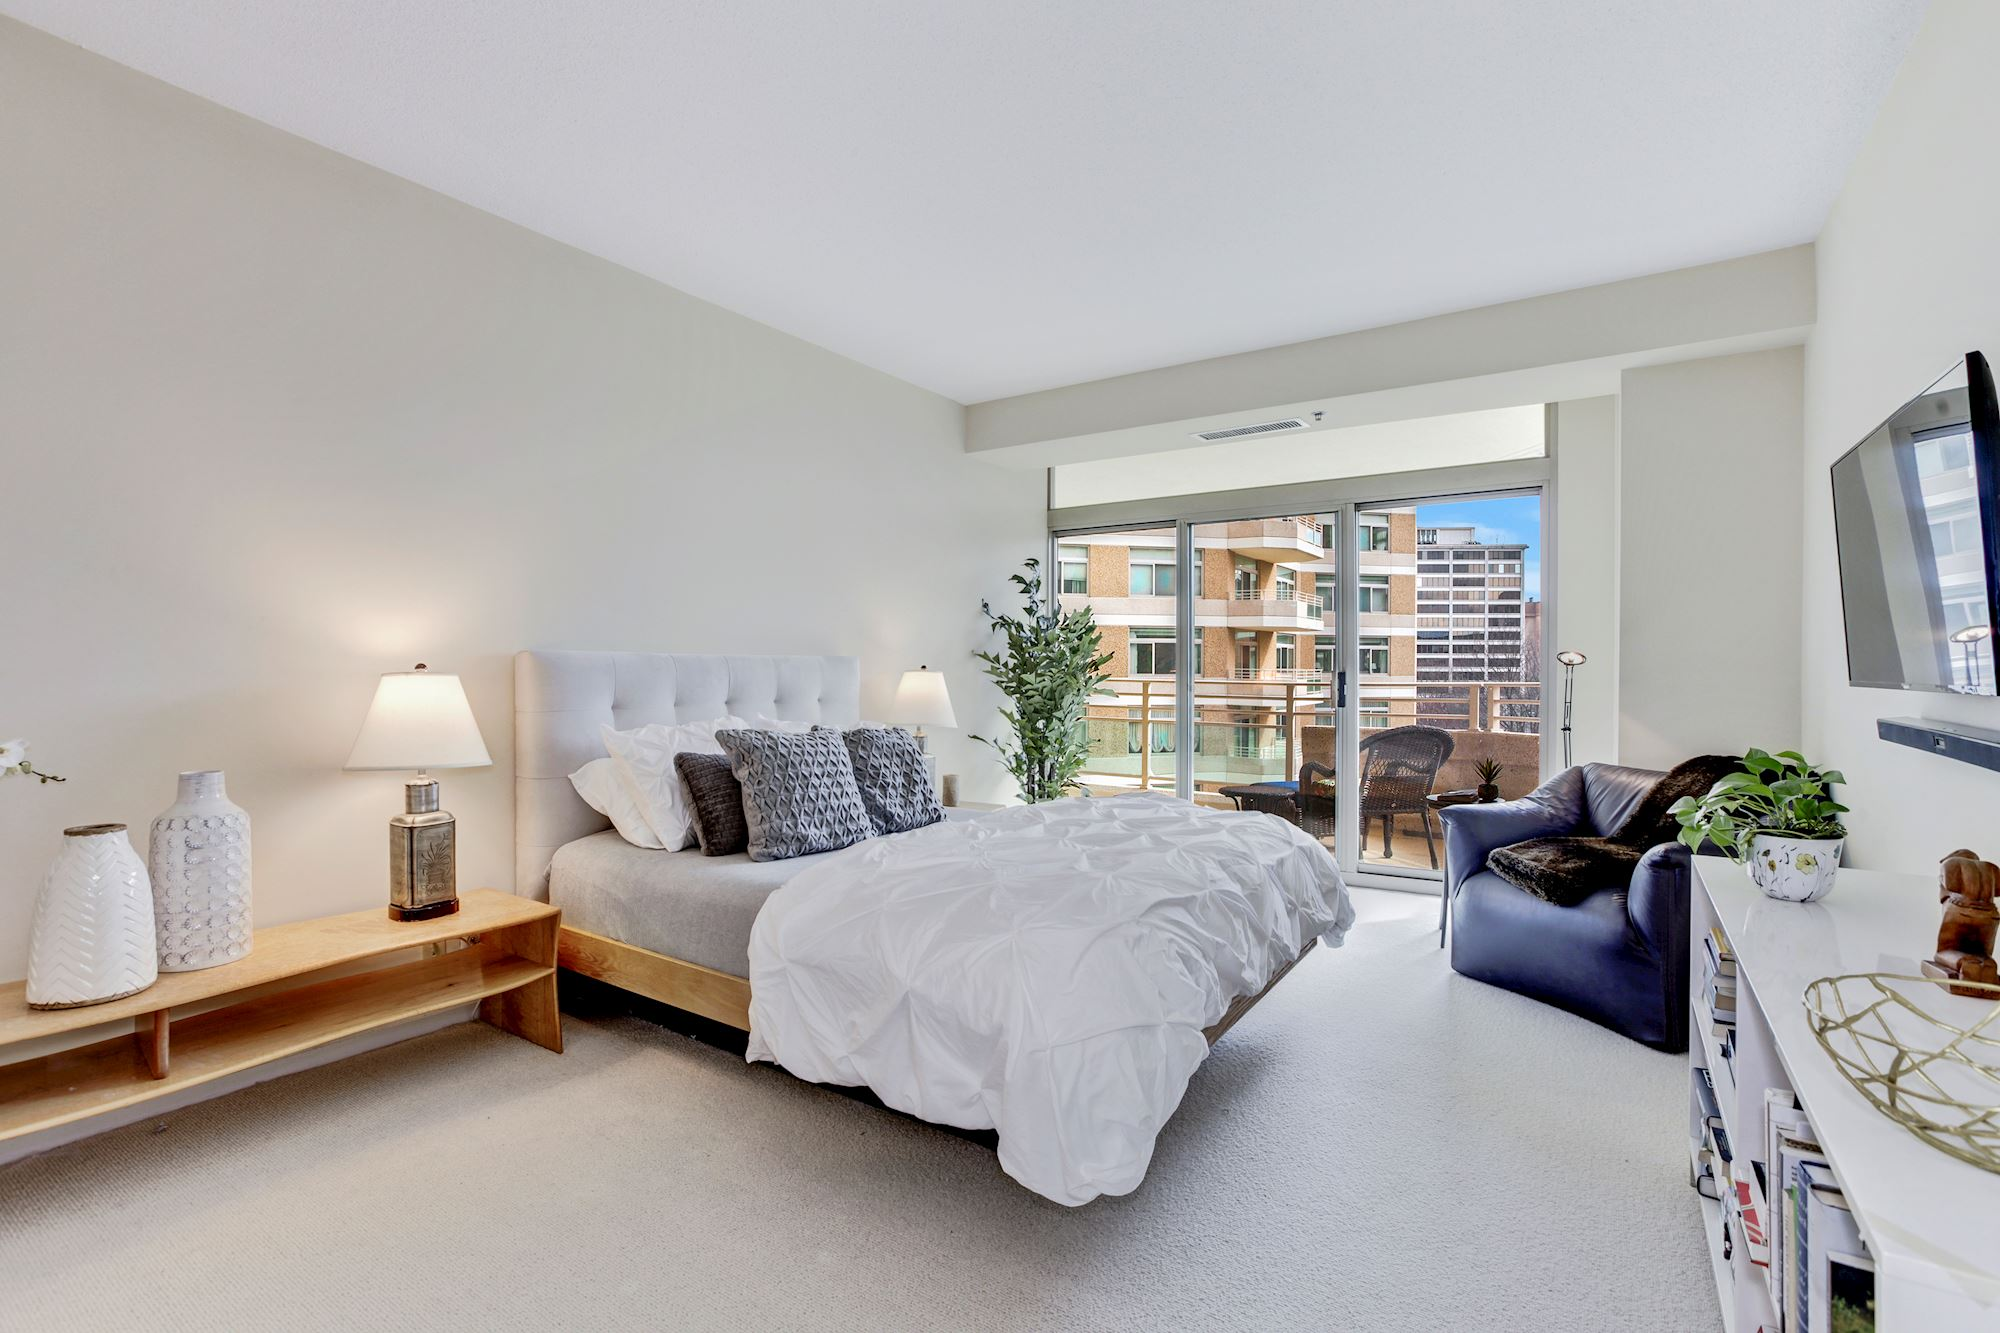 Master Bedroom with Terrace Access